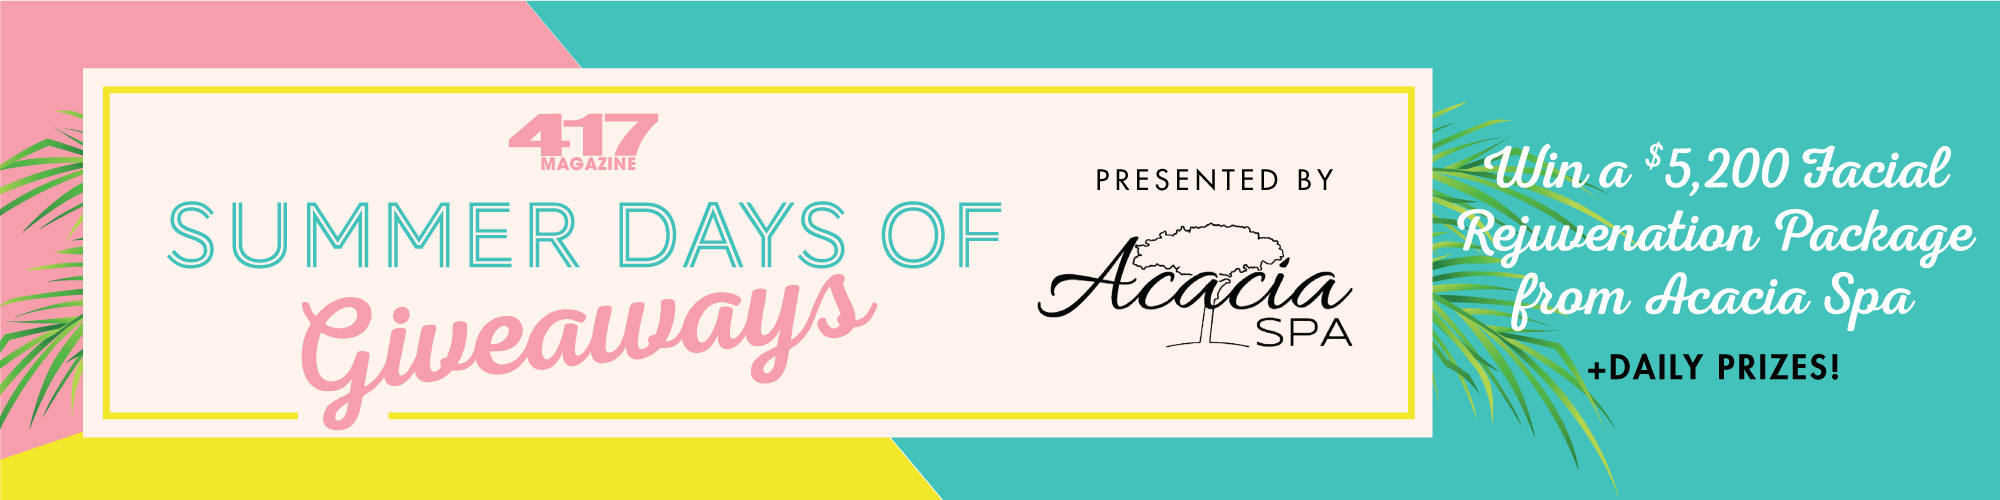 417 Magazine's Summer Days of Giveaways Presented by Acacia Spa